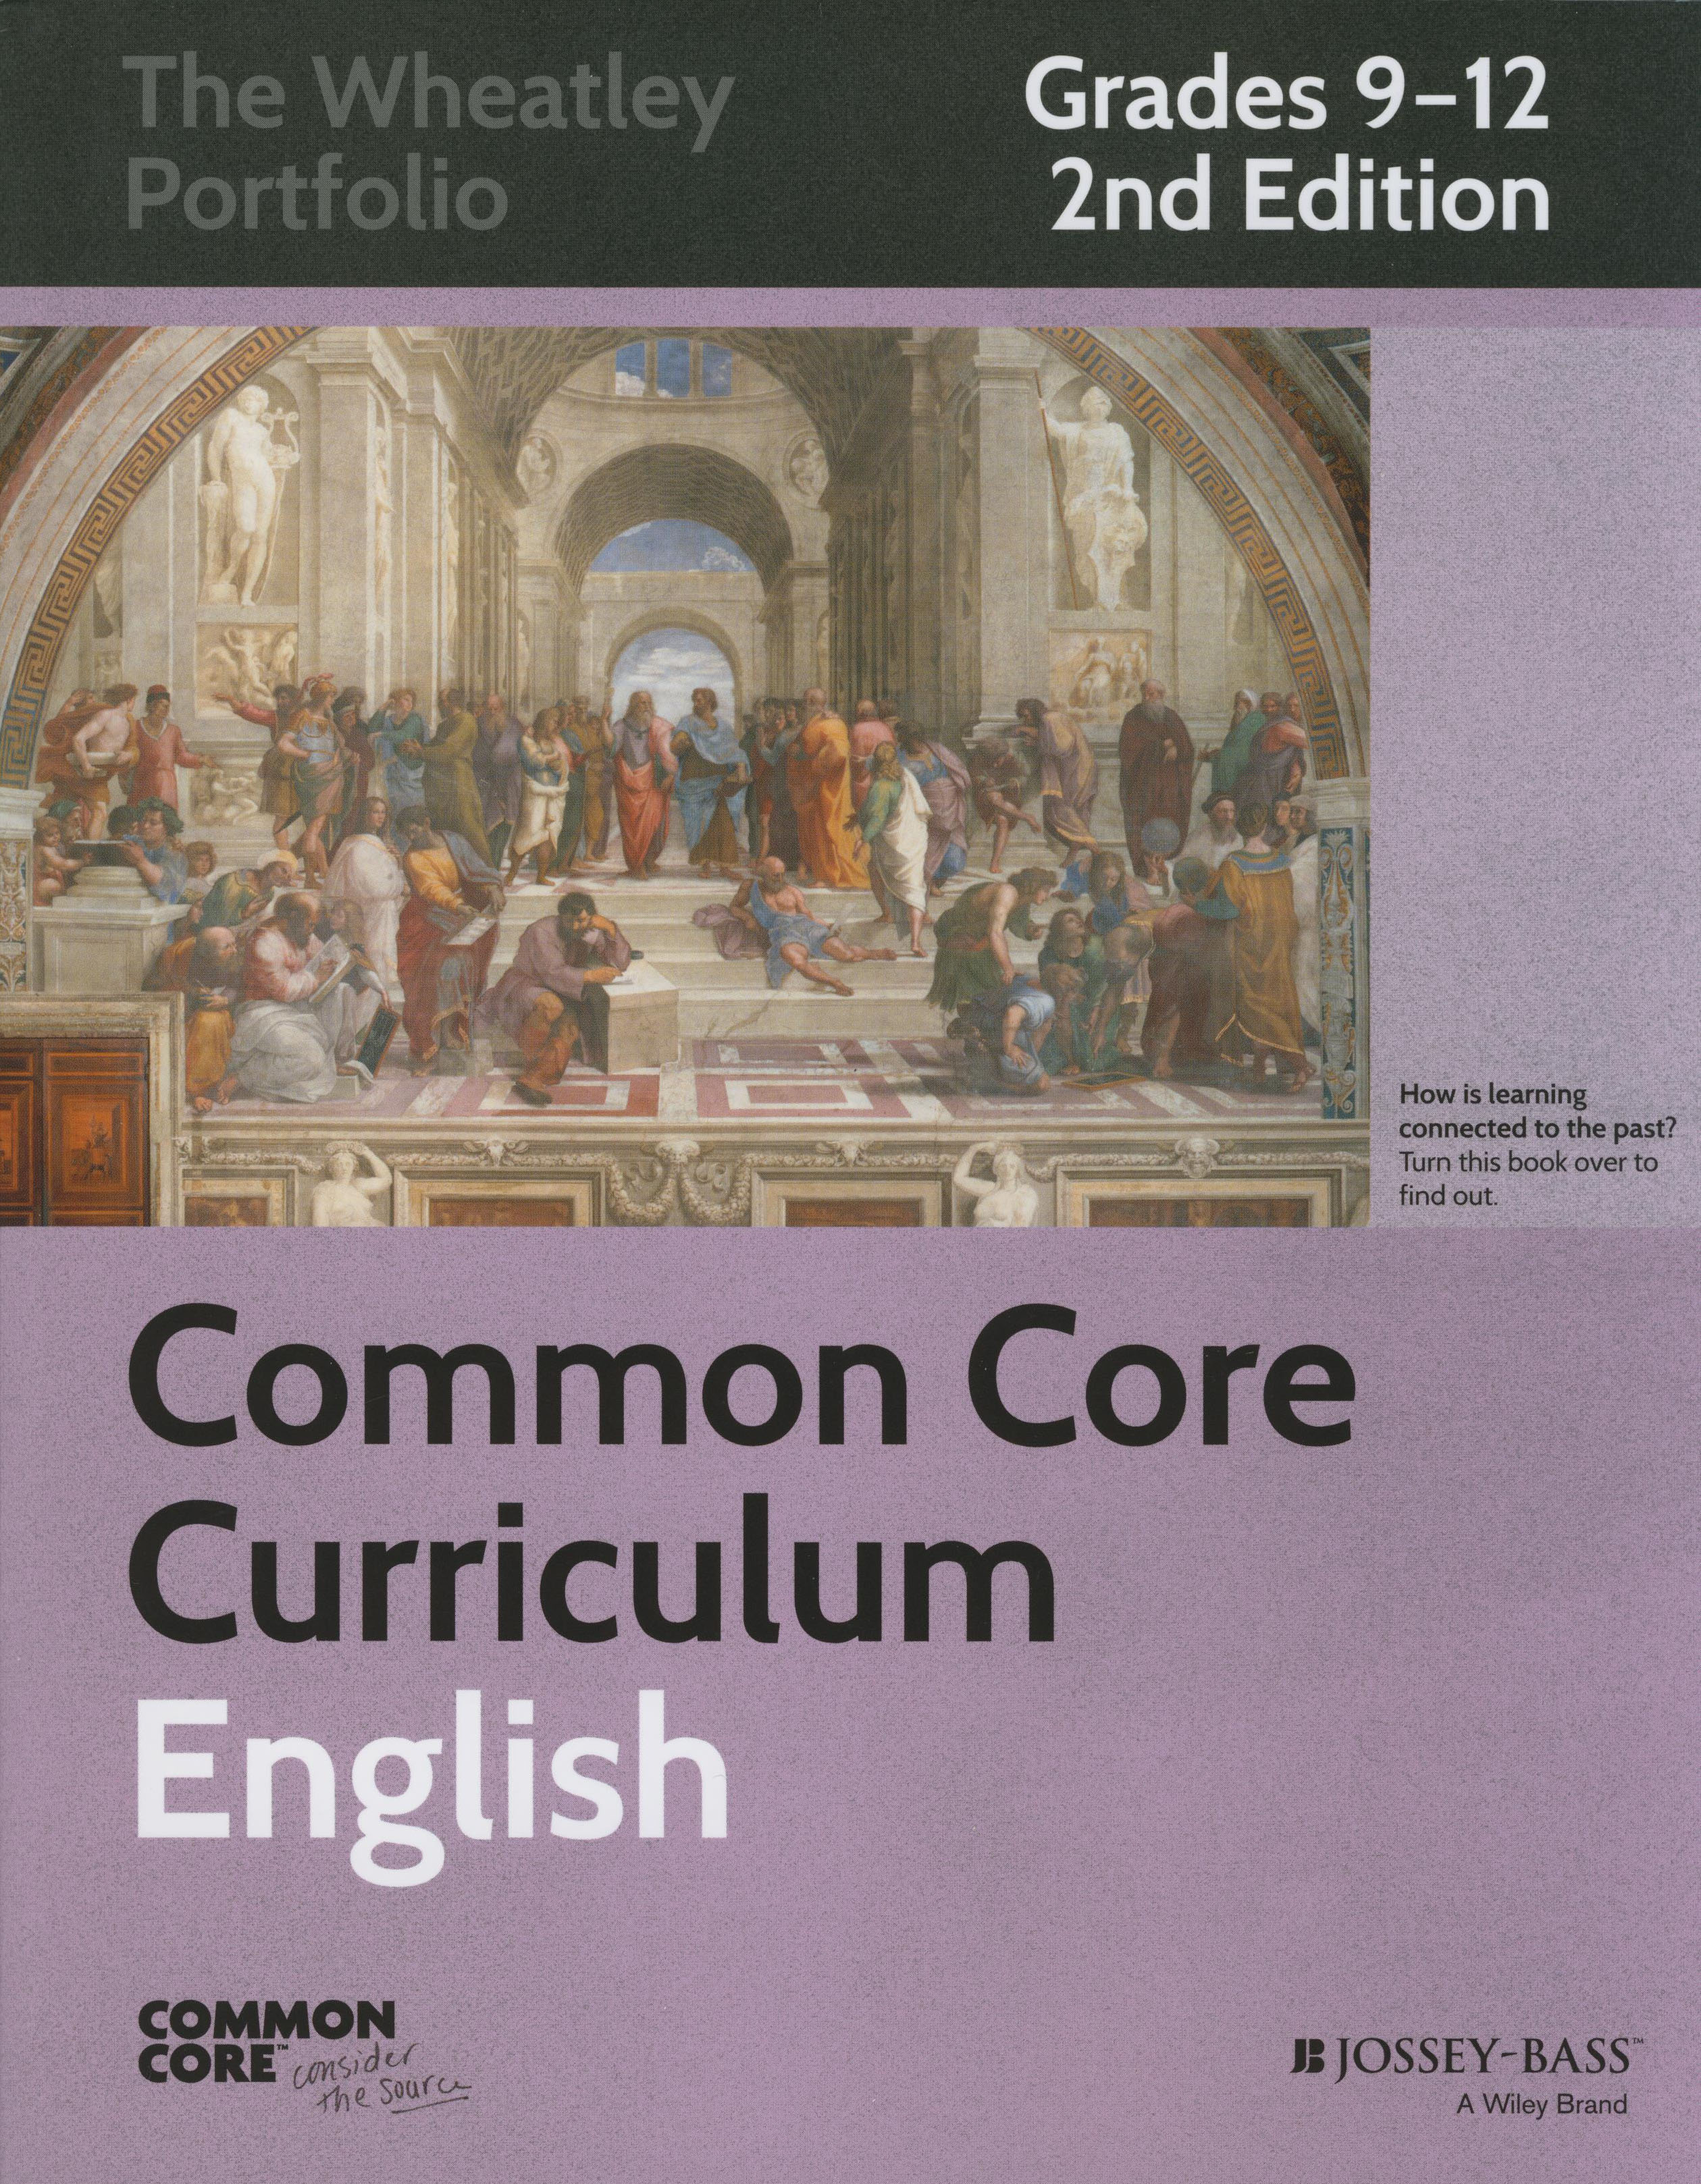 Common Core Curriculum English Grades 9-12, 2nd Edition Thematic Book